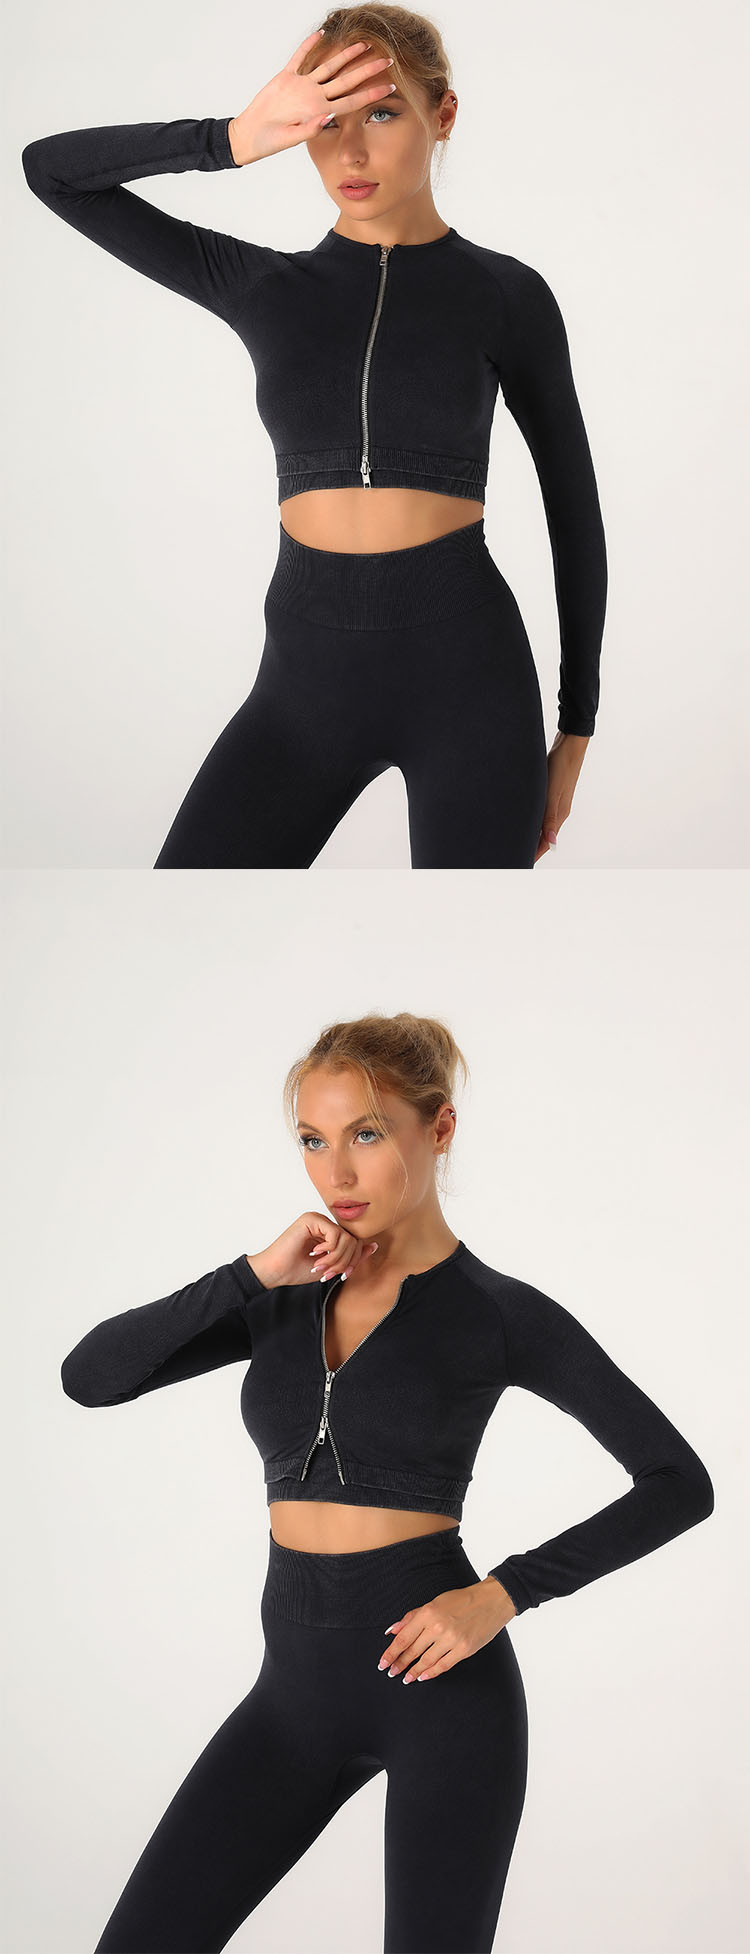 Zipper design, easy to put on and take off, the neckline can be adjusted at any time according to the temperature.